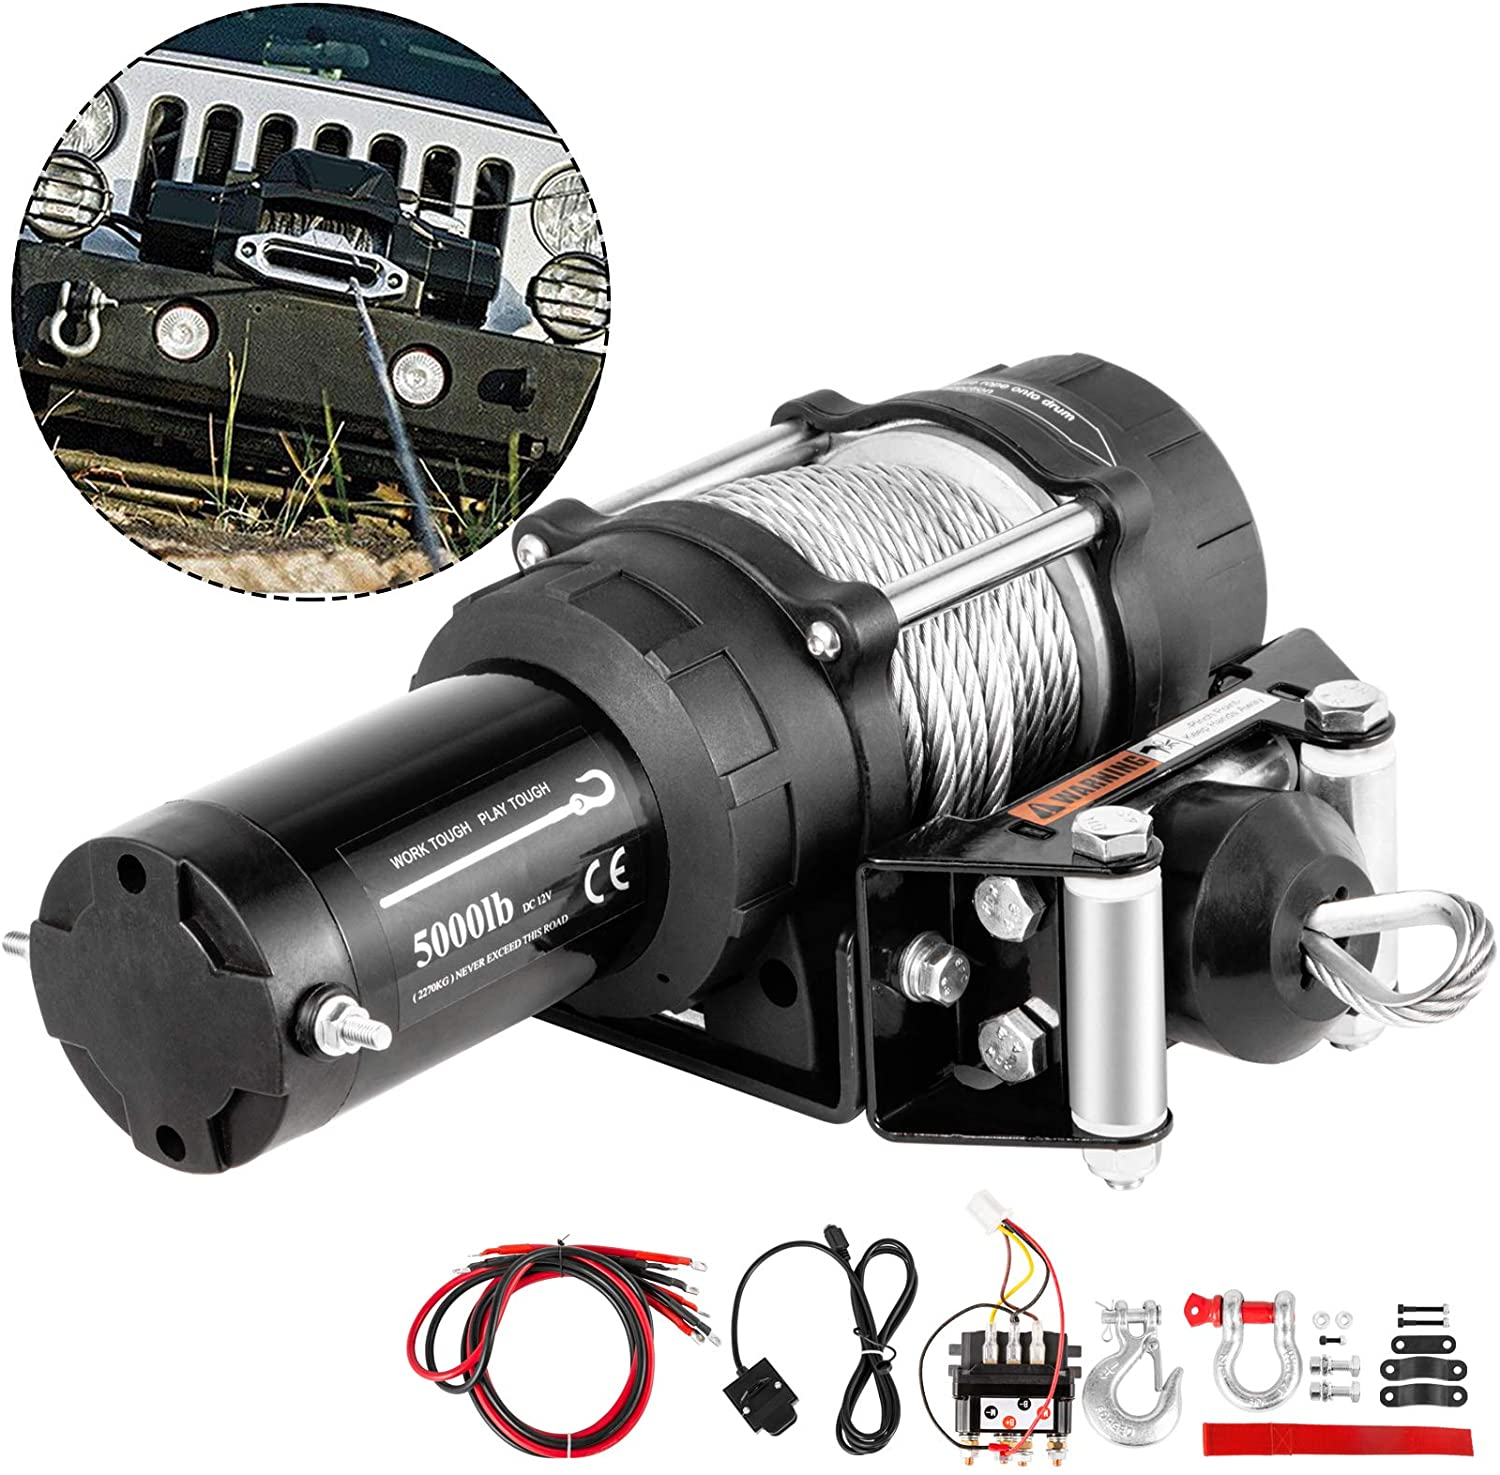 VEVOR Truck Winch 5,000LBS Electric Winch 13M Steel Cable 12V Power Winch Jeep Winch with Wireless Remote Control and Powerful Motor for UTV, ATV, Jeep, Truck and Wrangler Accessories in Car Lift